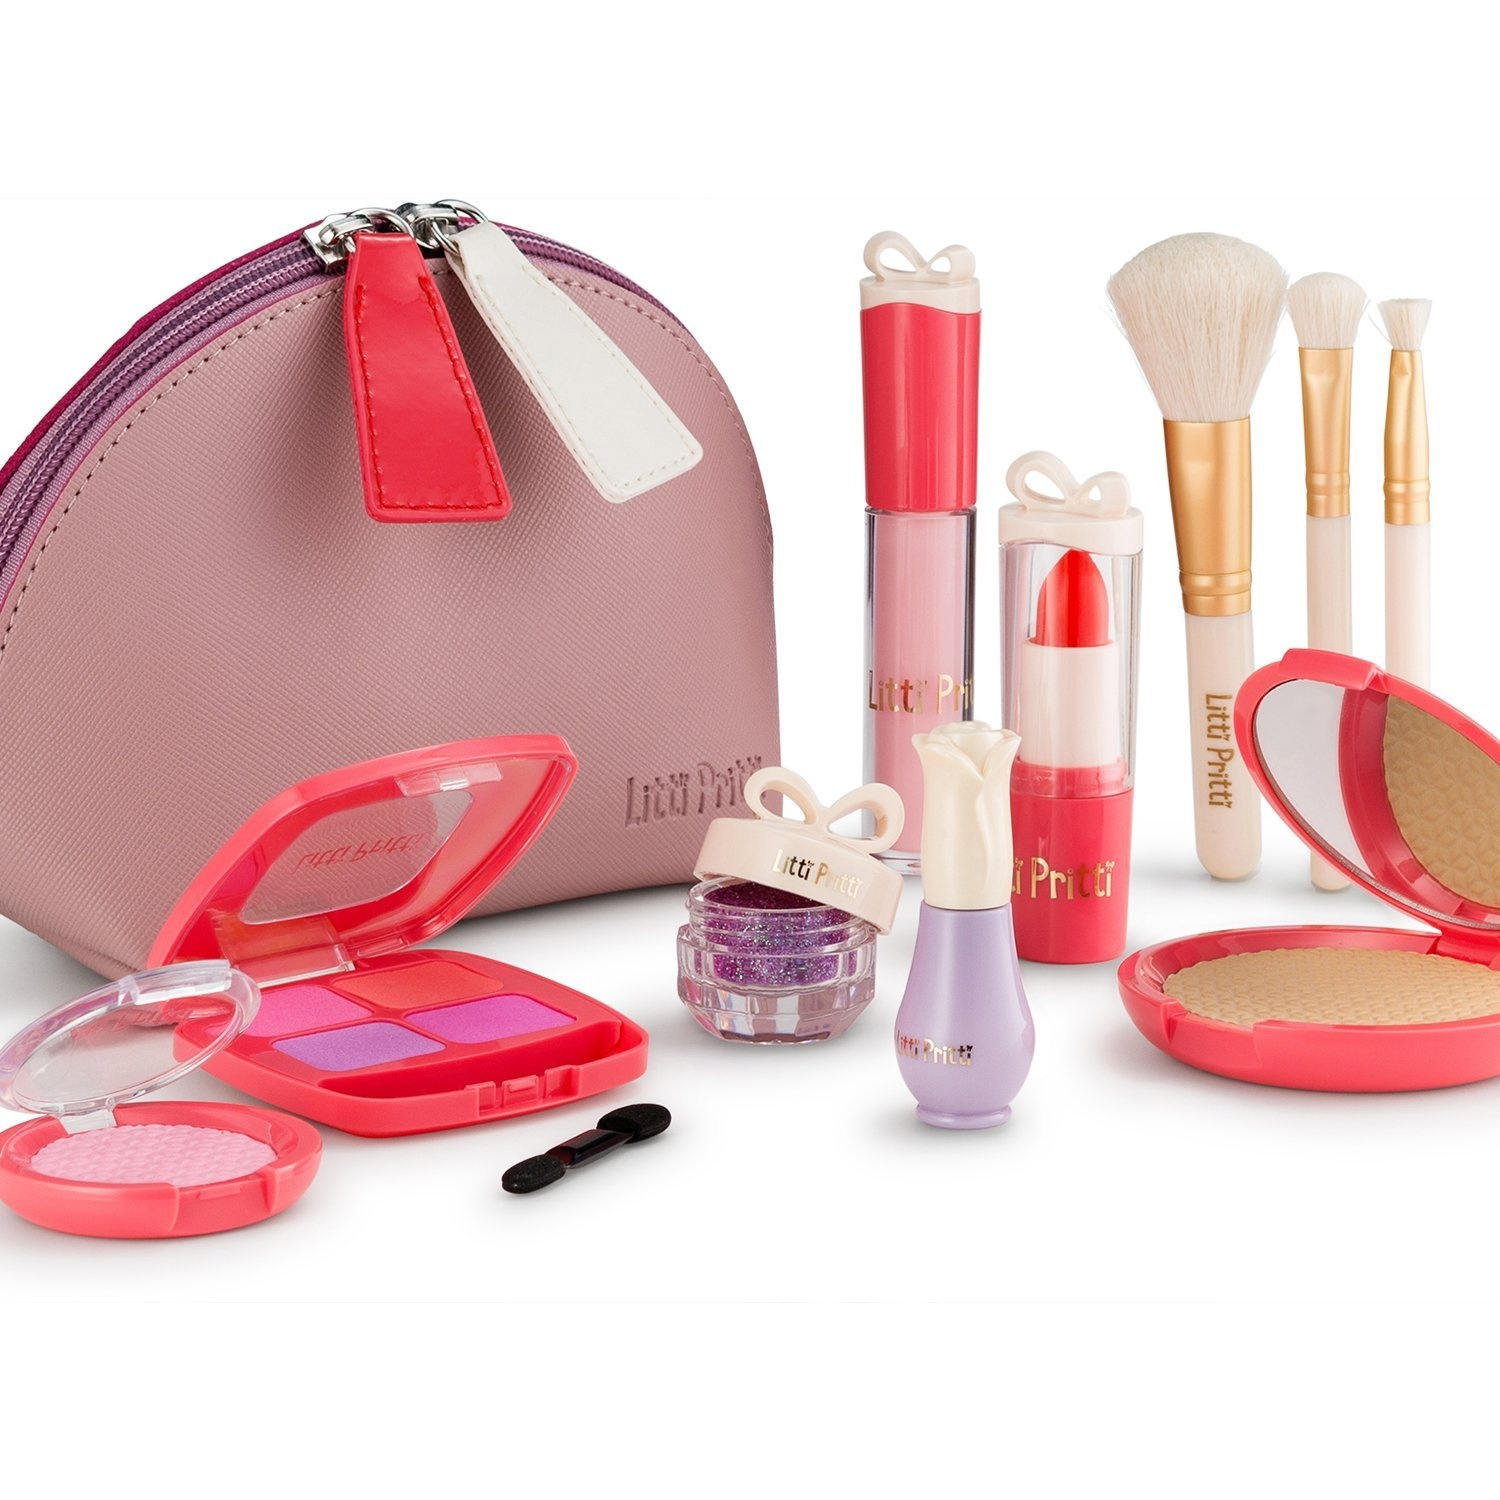 30a3df23ed2 Litti Pritti Pretend Makeup For Girls Set - 11 Piece Cosmetic Play Makeup  Kit - PU Leather Case